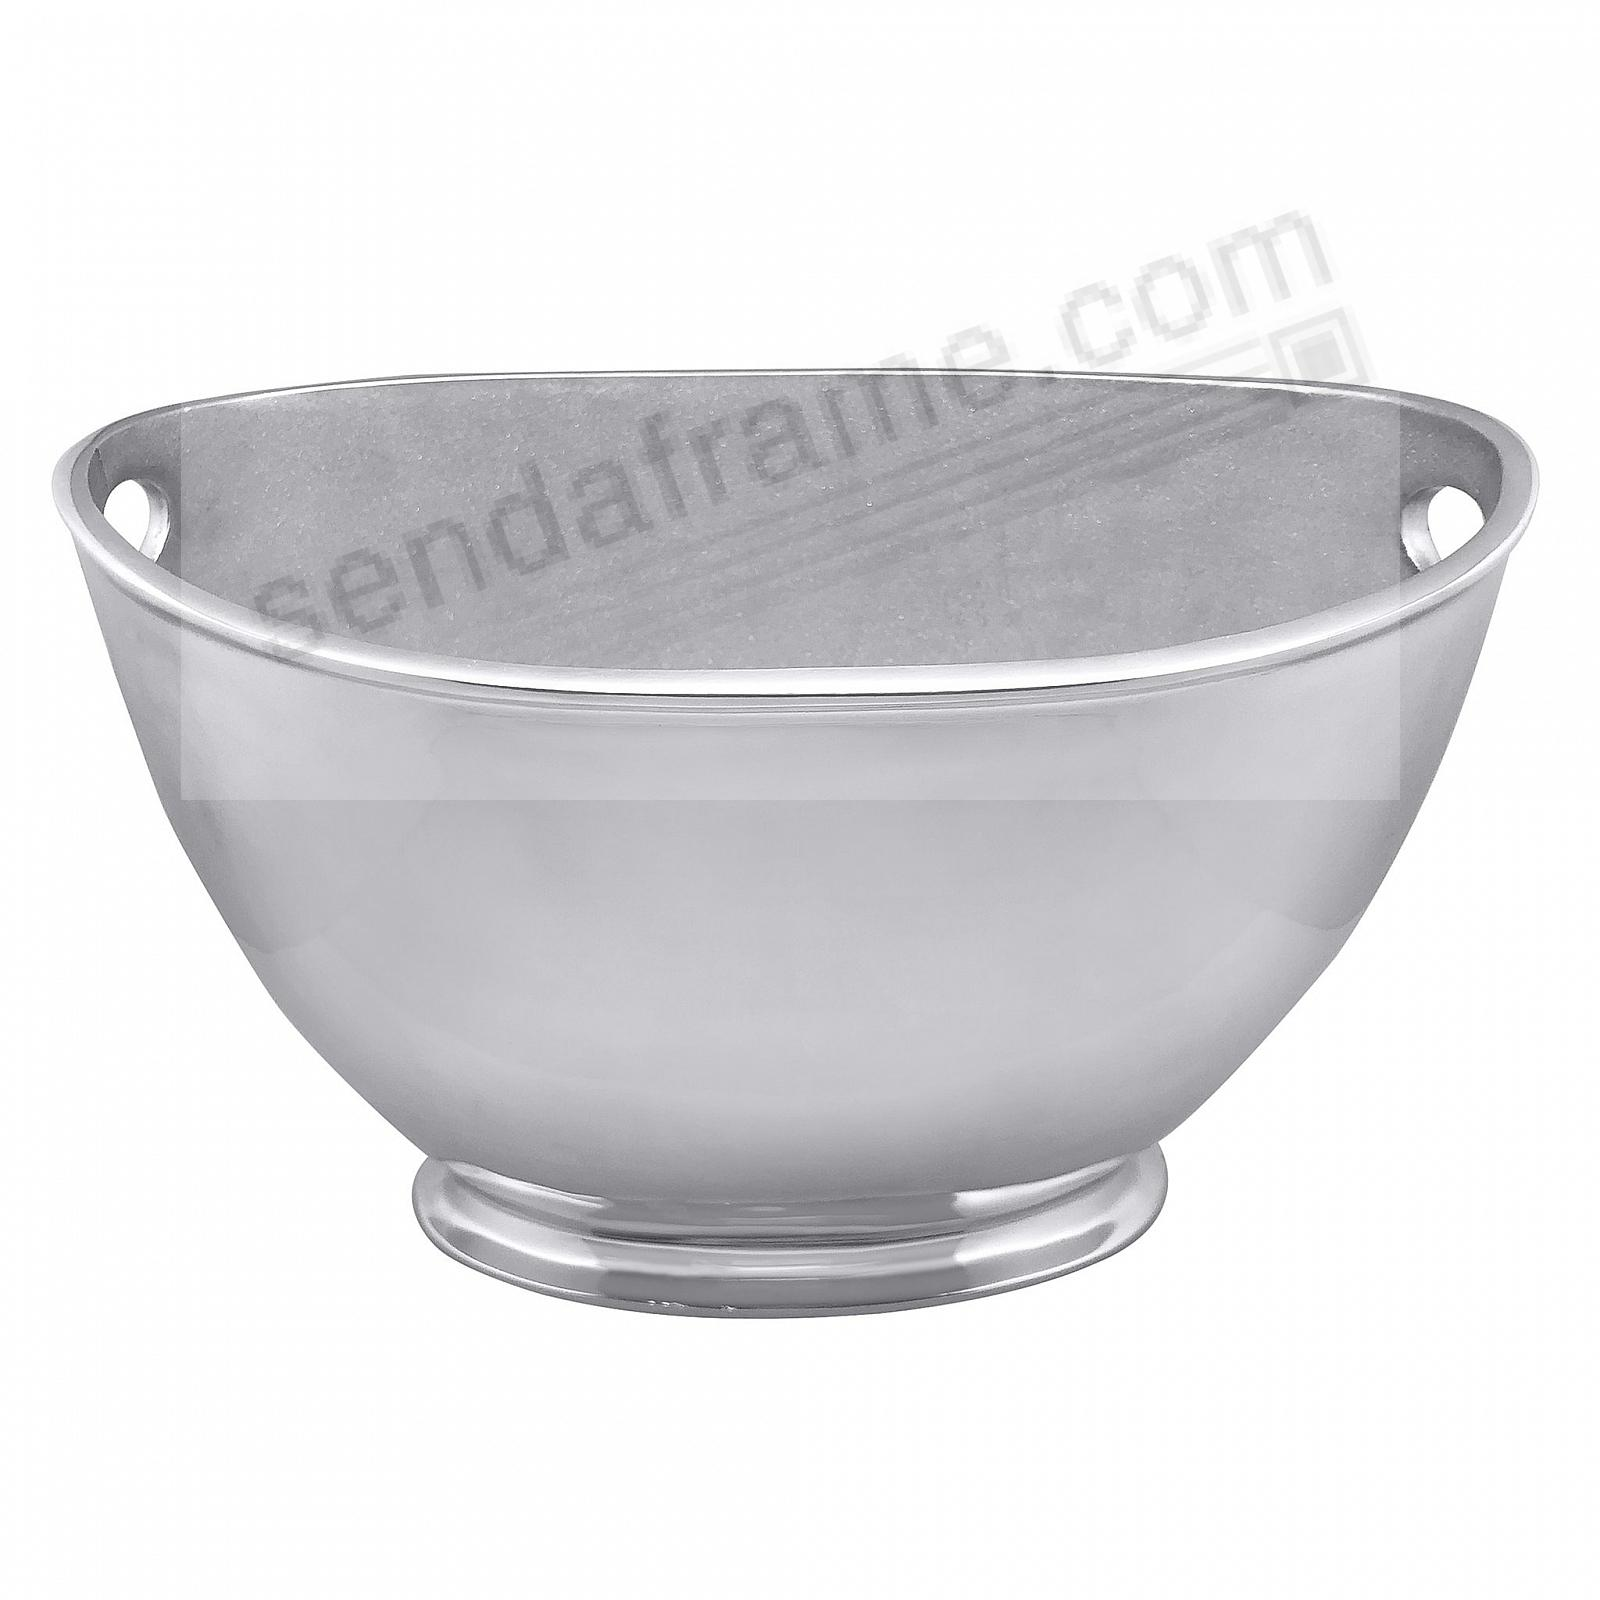 SIGNATURE OVAL ICE BUCKET by Mariposa®